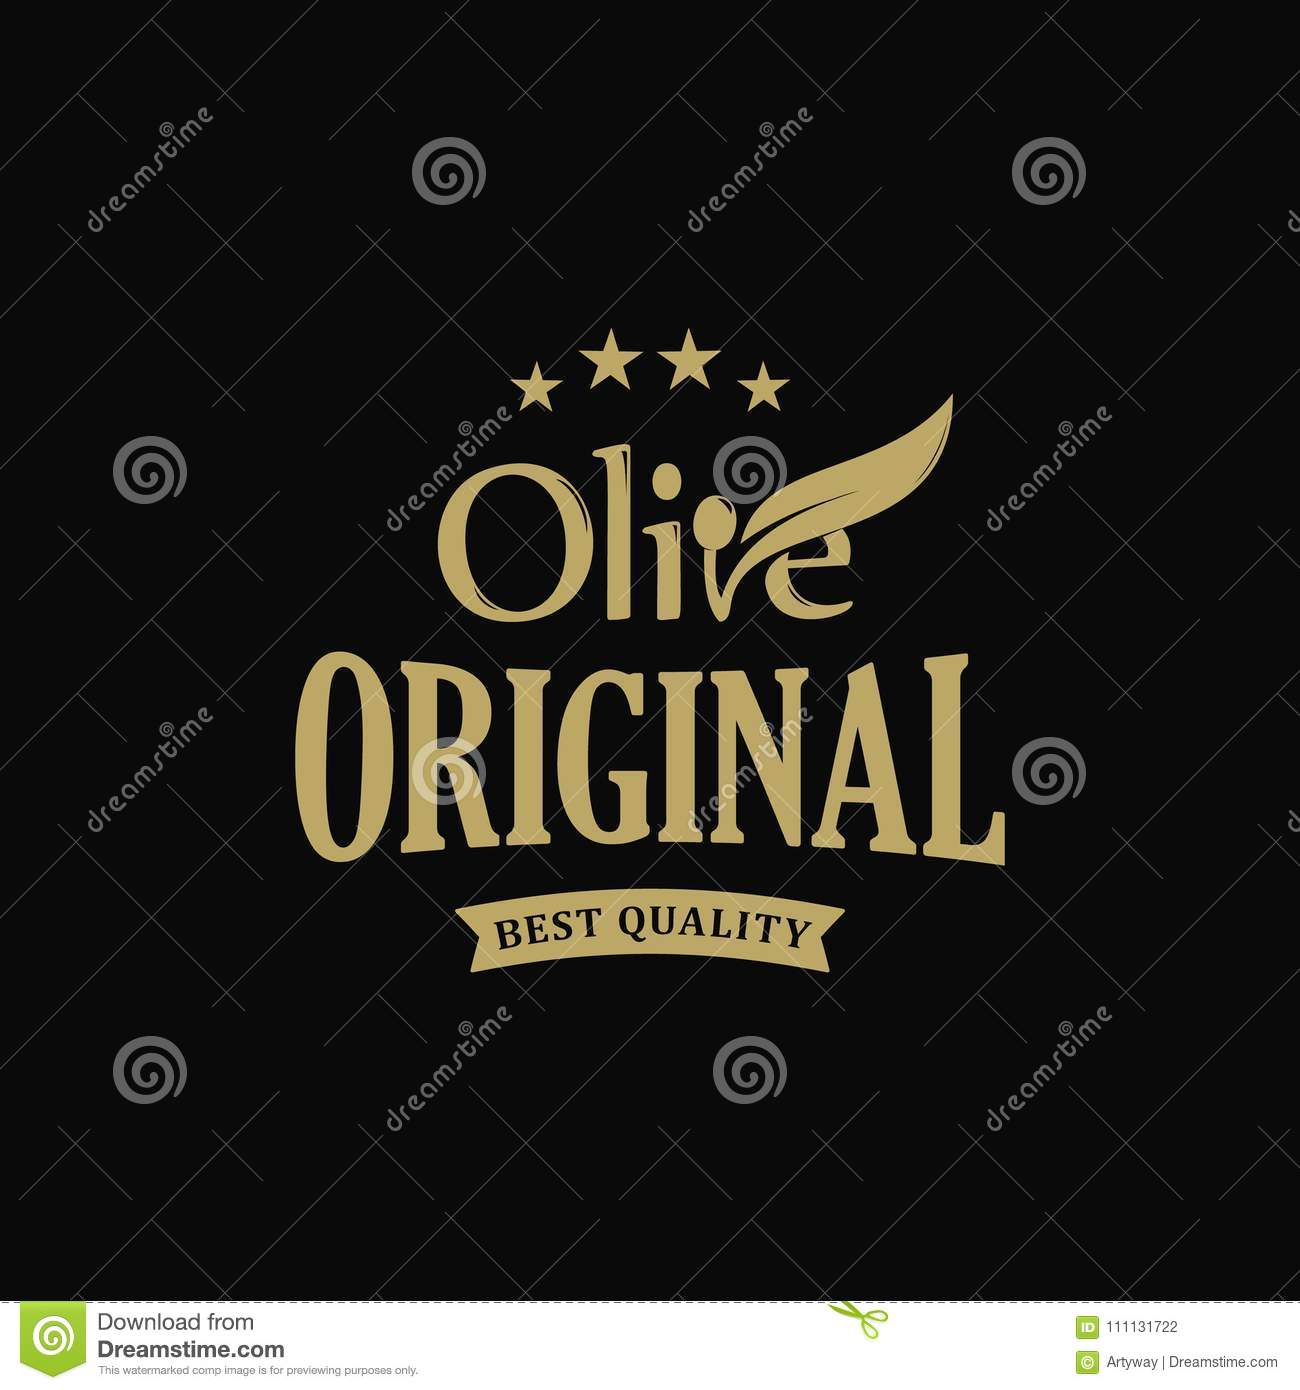 Extra virgin Olive oil premium quality. Olives branch vintage label. Healthy products retro green vector logo template